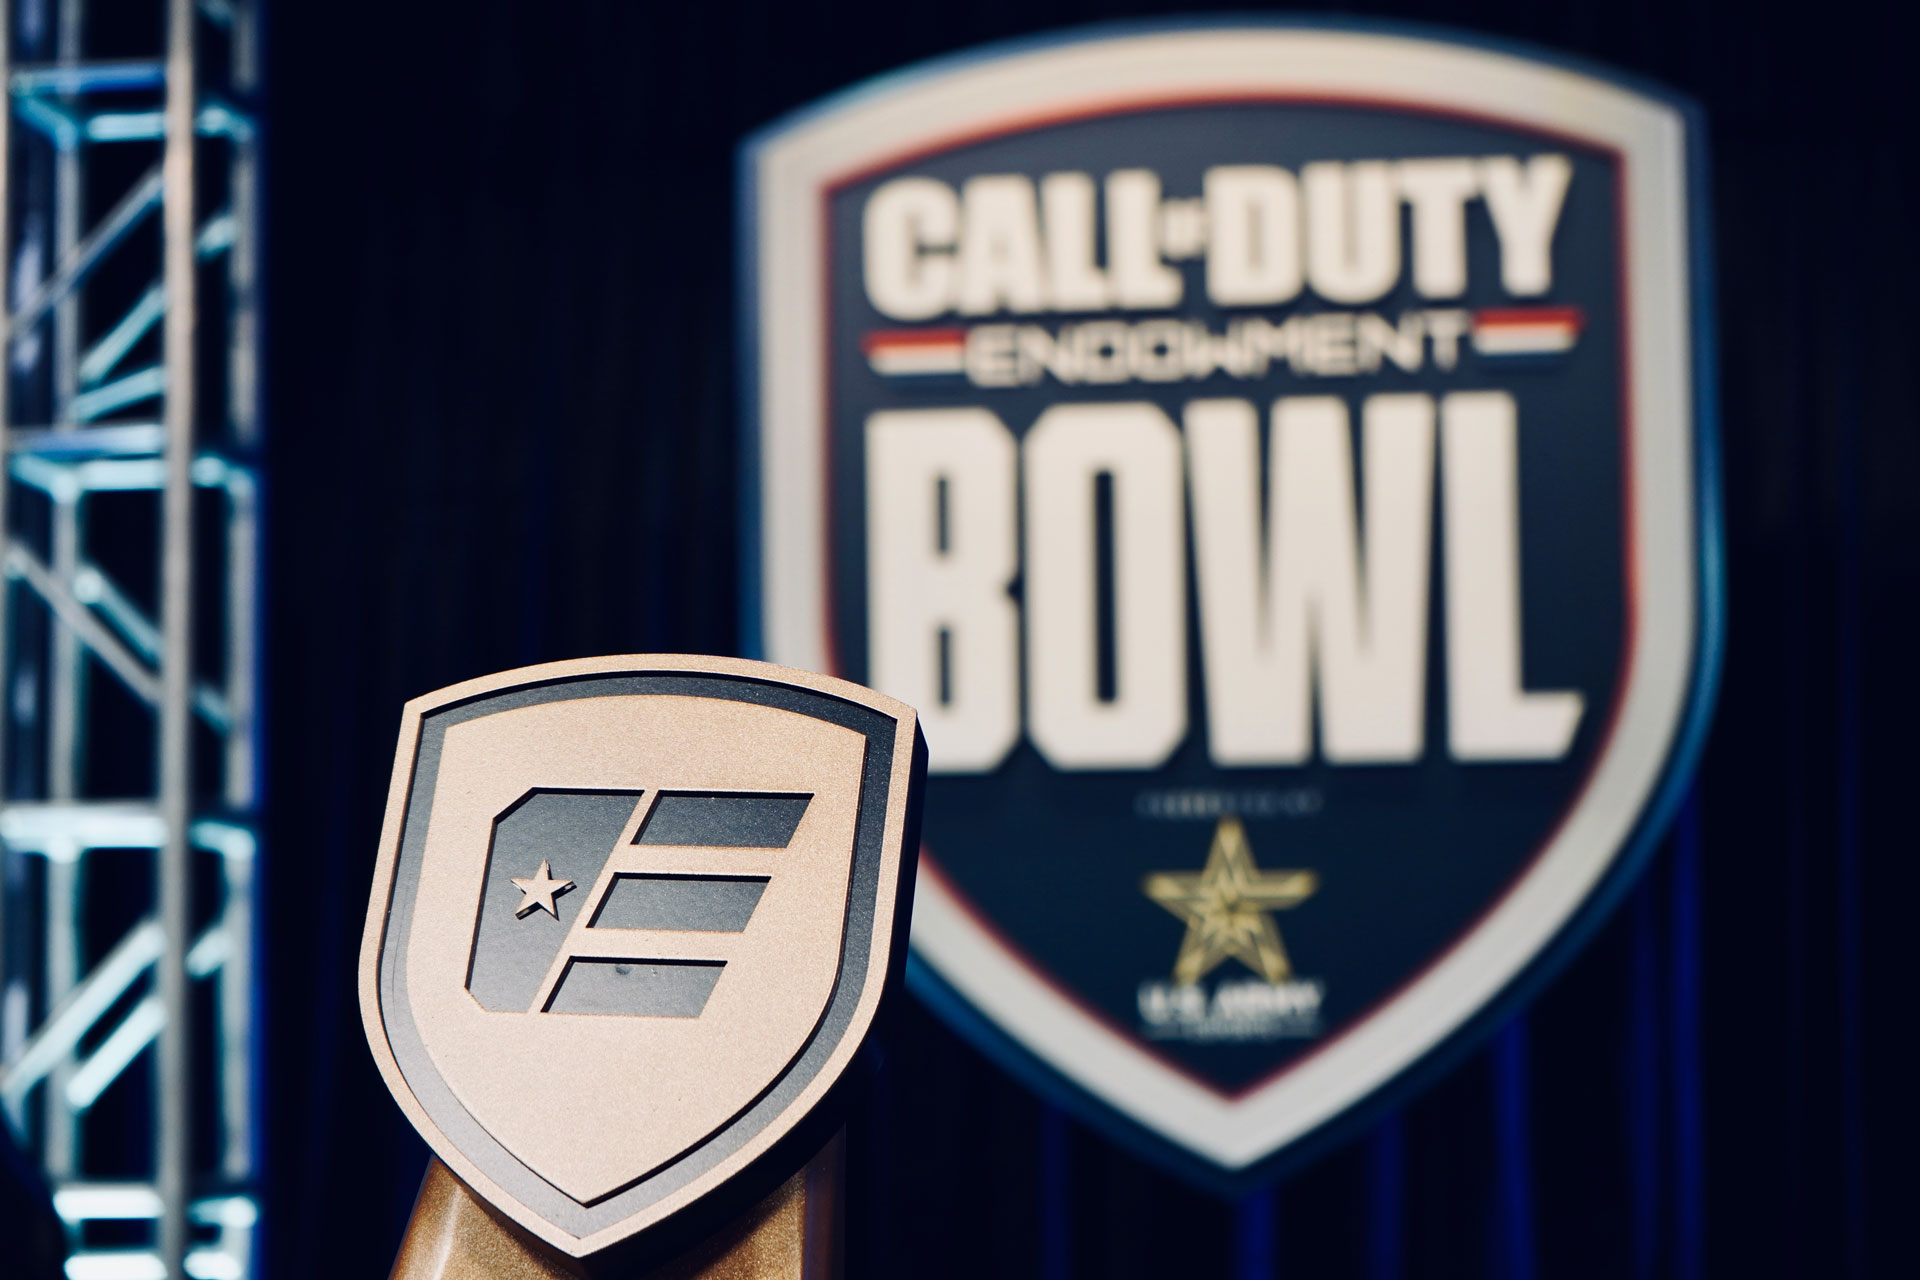 The Call of Duty Endowment has placed 66,000 veterans in high-quality jobs - Image 2